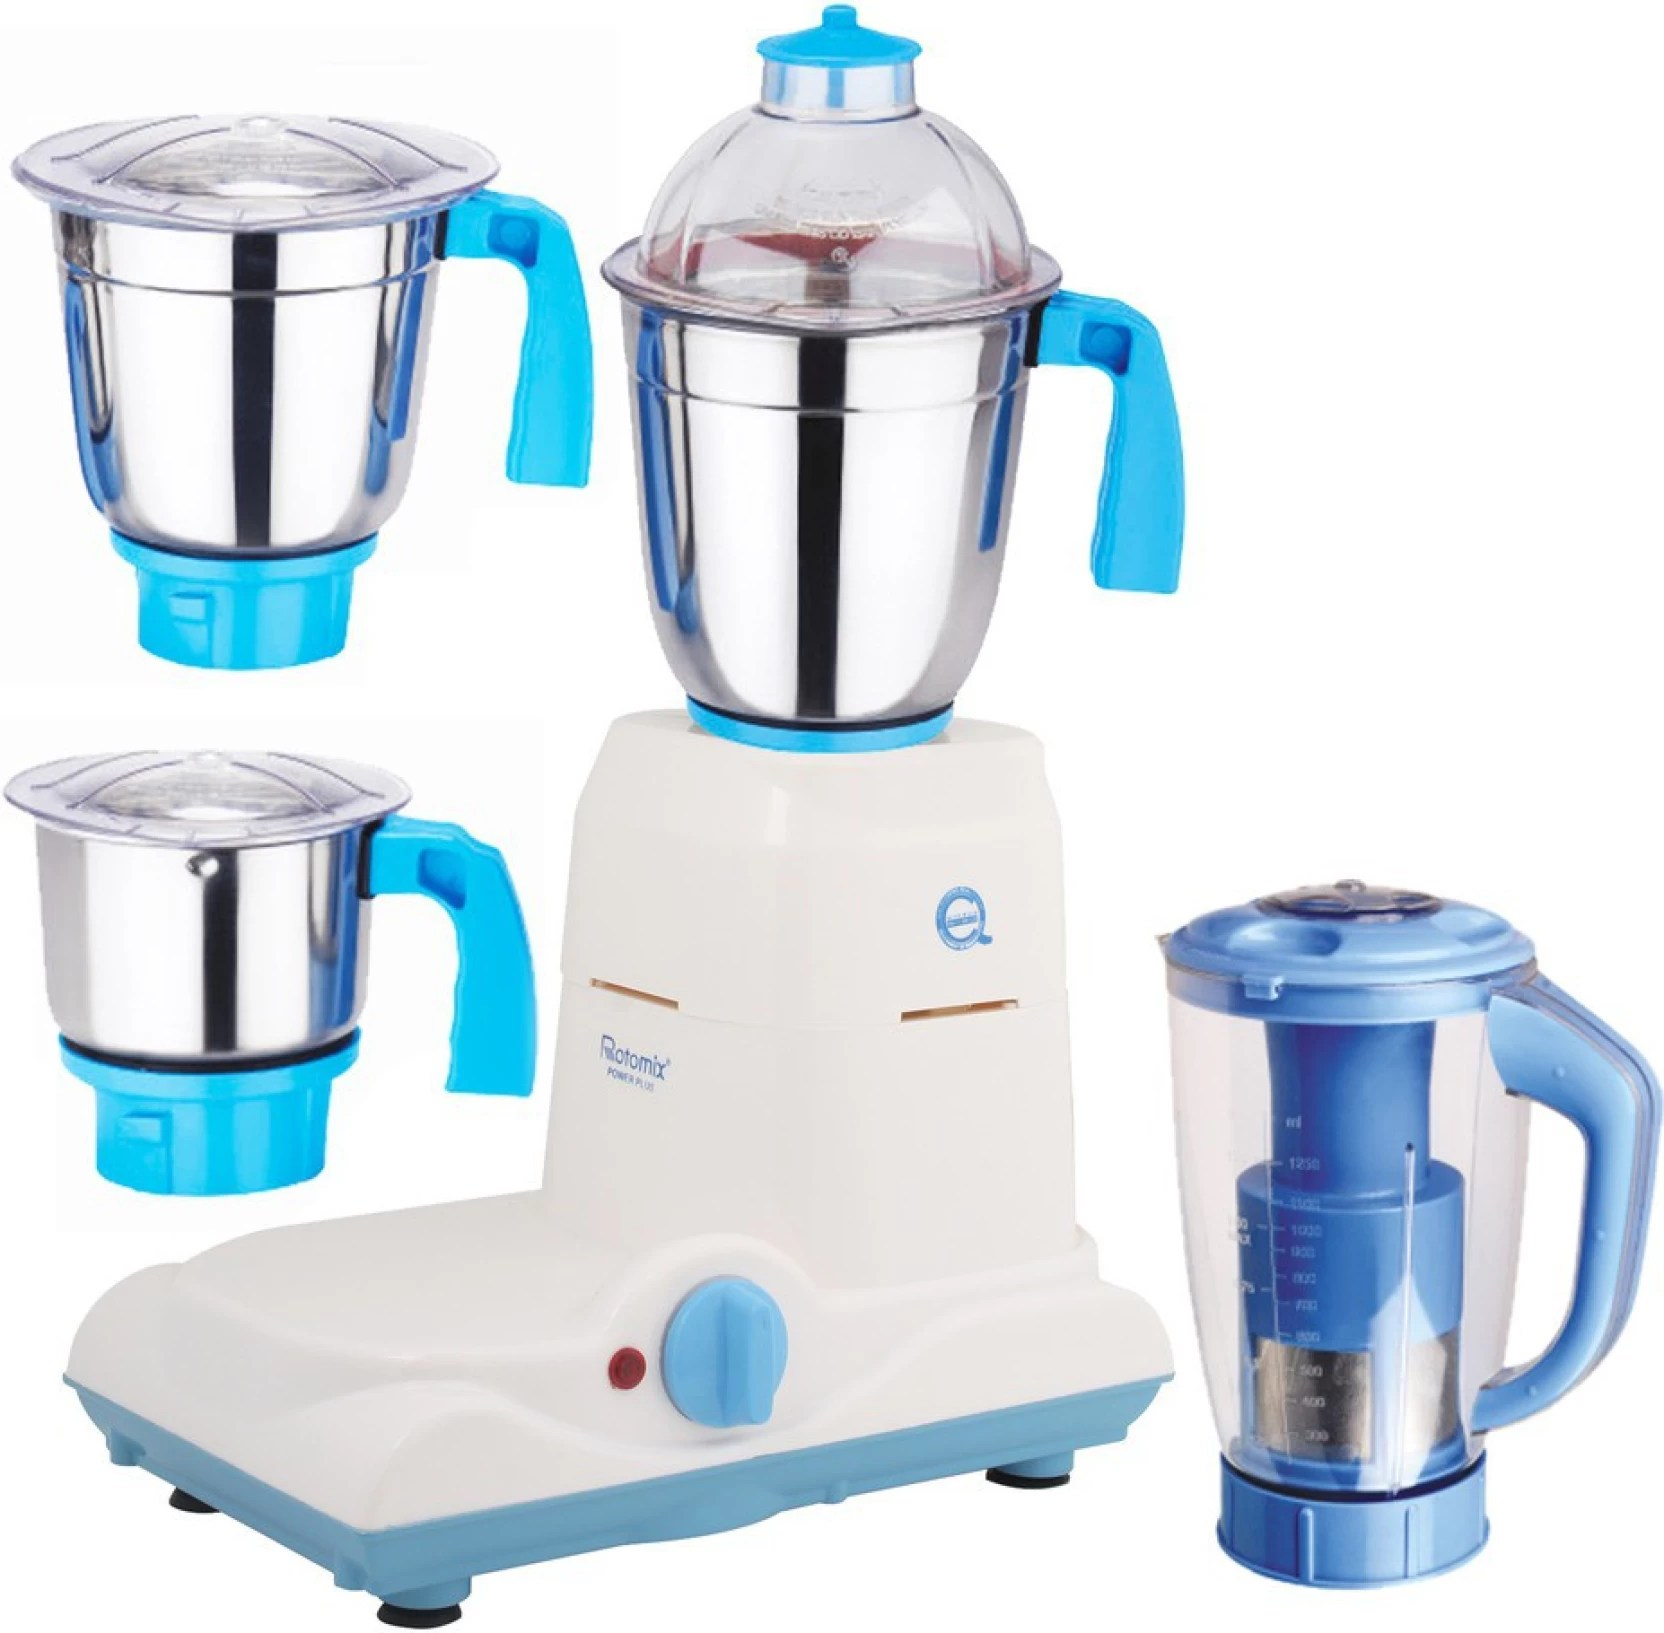 Regal Led Tv 32 Inch Rotomix Regal 750 W Mixer Grinder Price In India Buy Rotomix Regal